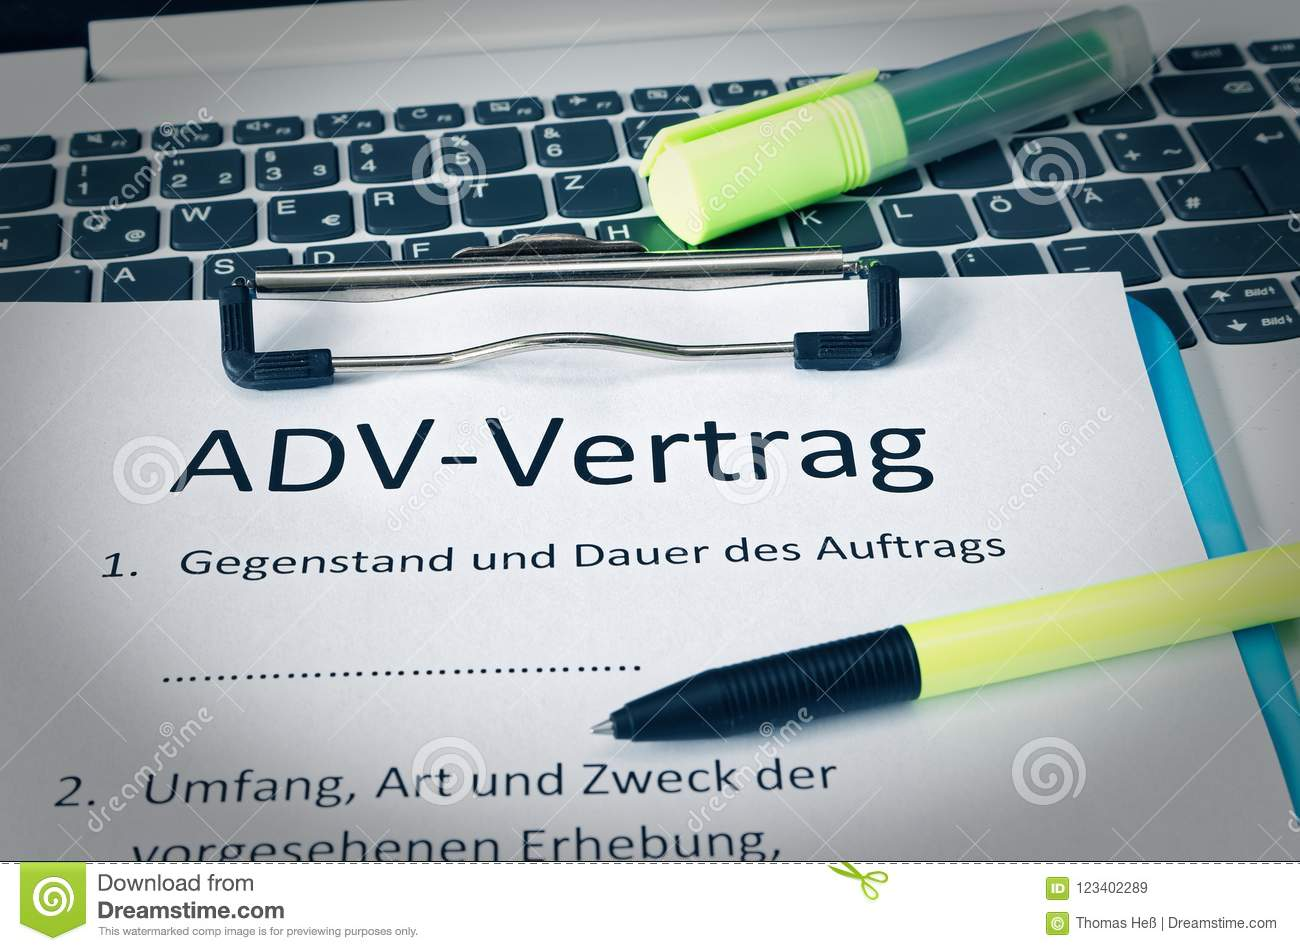 Clipboard With A Contract And Inscription In German ADV-Vertrag In ...